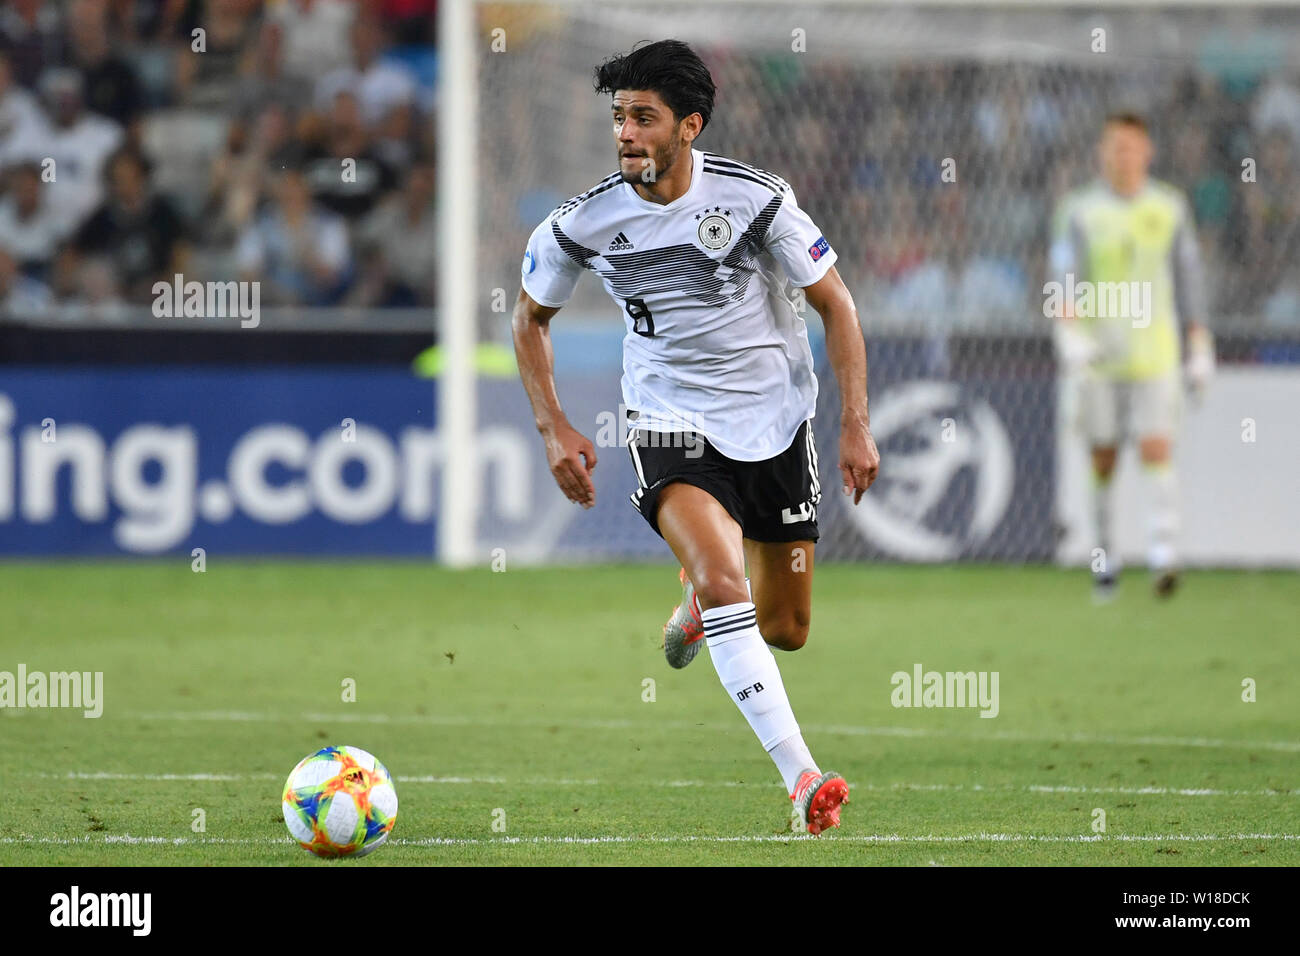 Udine, Italien. 30th June, 2019. Mahmoud DAHOUD (GER), Action, Single Action, Frame, Cut Out, Full Body, Whole Figure. Spain (ESP) - Germany (GER) 2-1, at 30.06.2019 Stadio Friuli Udine. Football U-21, FINALE UEFA Under21 European Championship in Italy/SanMarino from 16.-30.06.2019. | Usage worldwide Credit: dpa/Alamy Live News - Stock Image